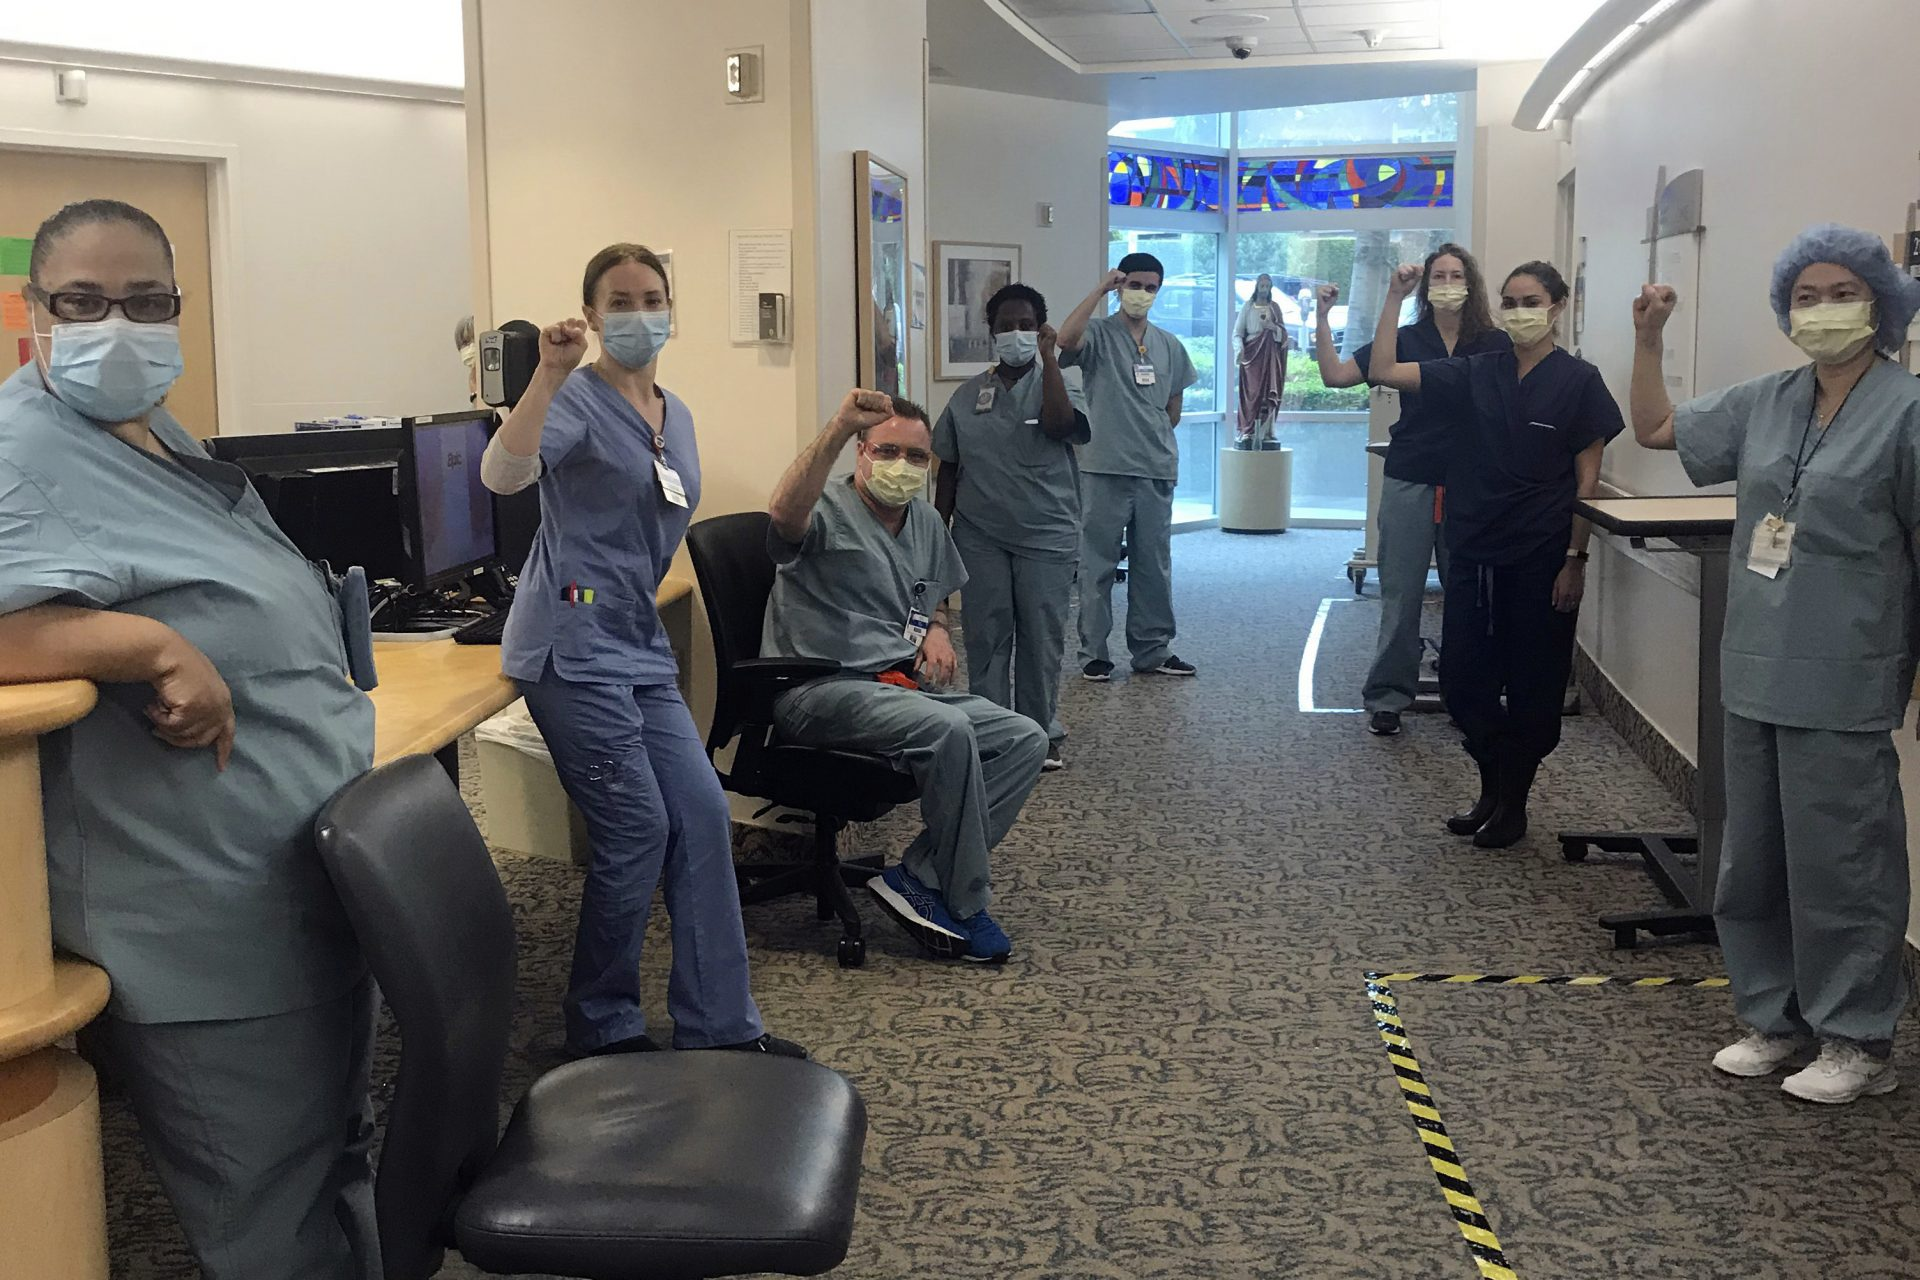 In this image provided by Lizabeth Baker Wade, nurses at Providence Saint John's Health Center in Santa Monica, Calif., on April 10, 2020, raise their fists in solidarity after telling managers they can't care for COVID-19 patients without N95 respirator masks to protect themselves. The hospital has suspended ten nurses from the ward, but has started providing nurses caring for COVID-19 patients with N95 masks